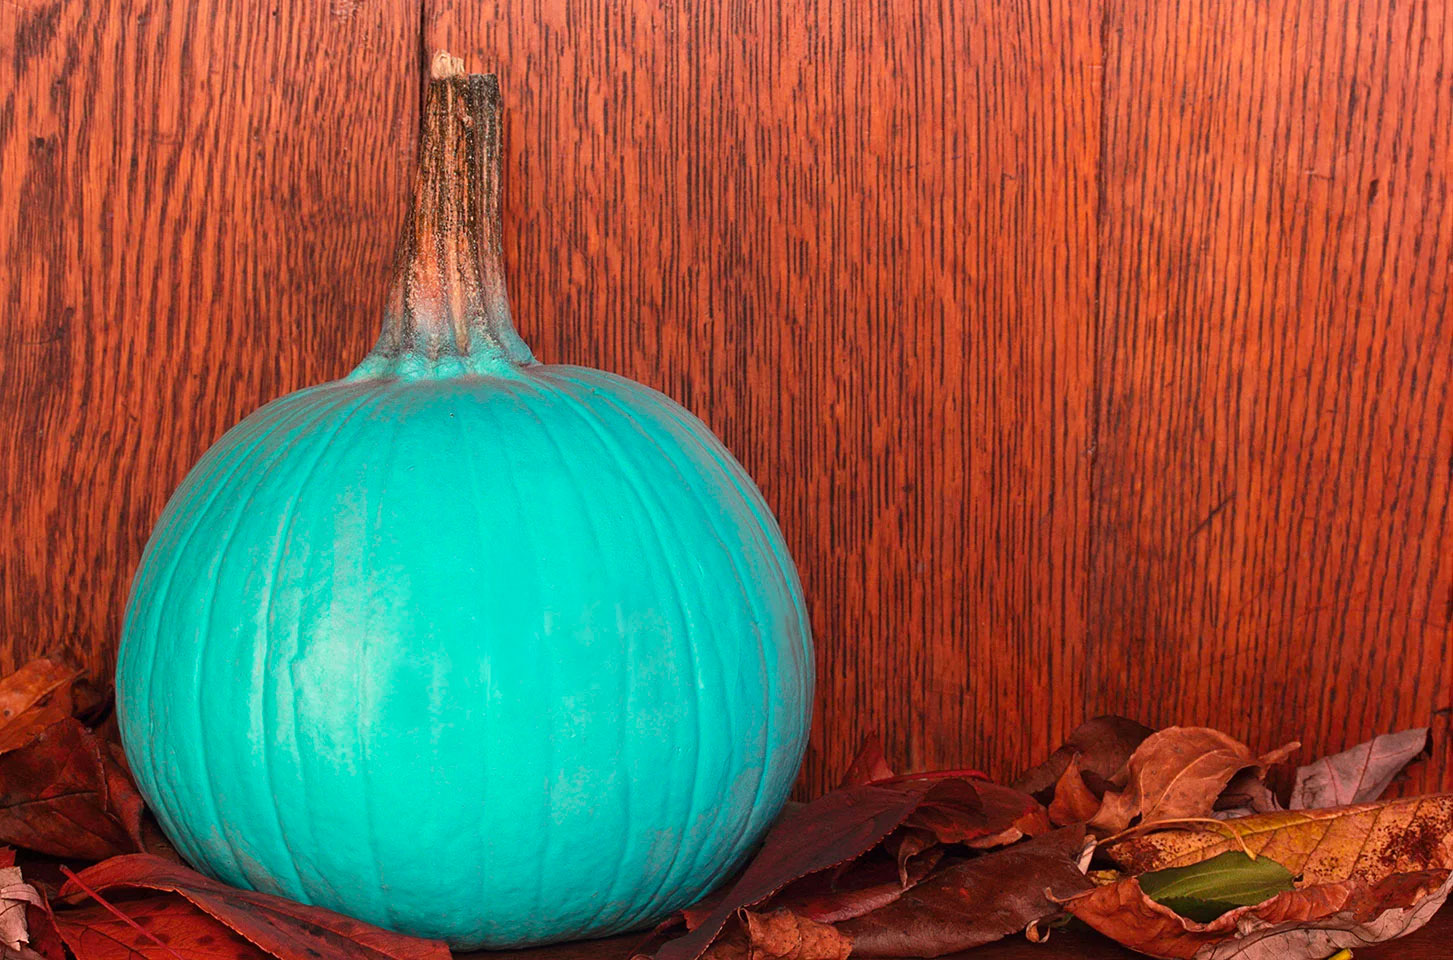 Teal Pumpkin on a pile of leaves